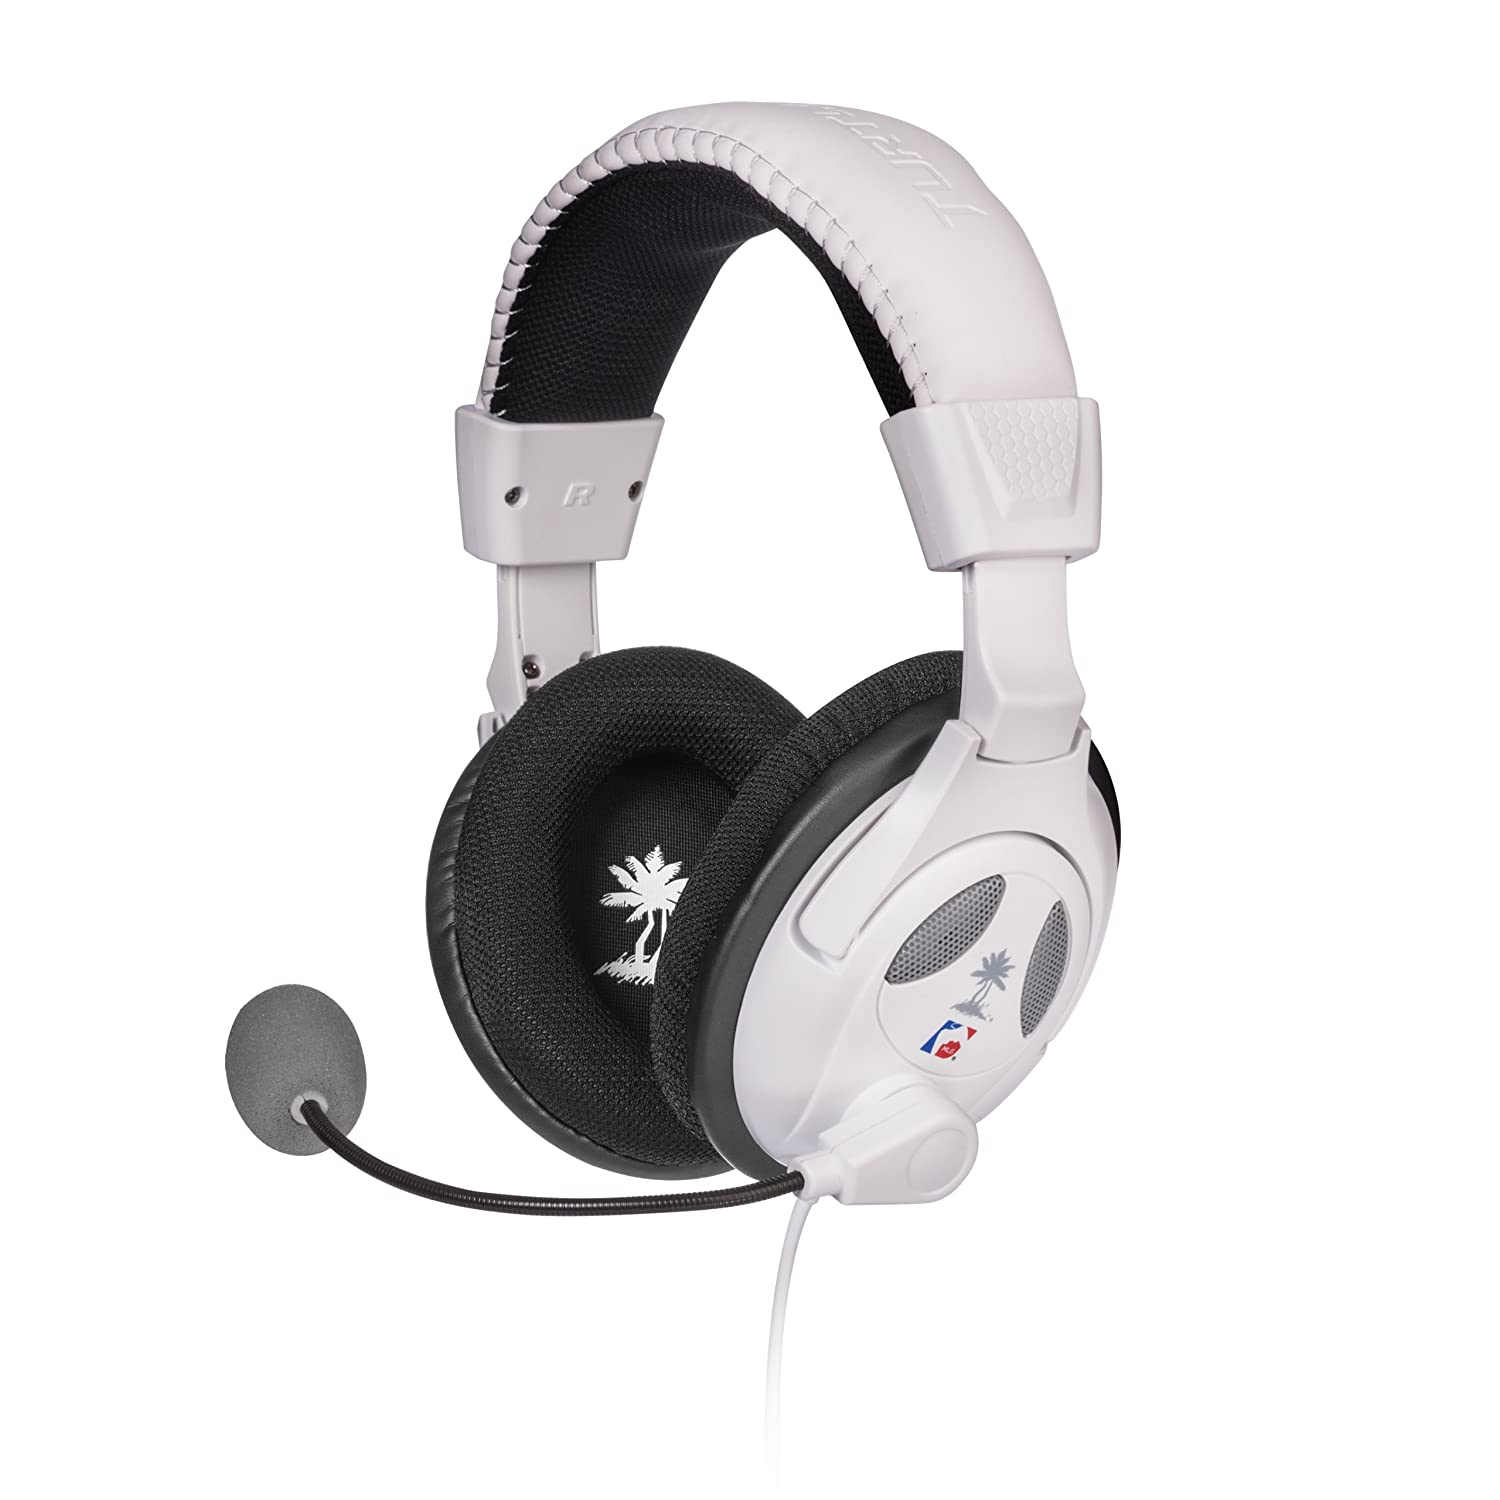 PS4-Headset: Turtle Beach Ear Force PX22